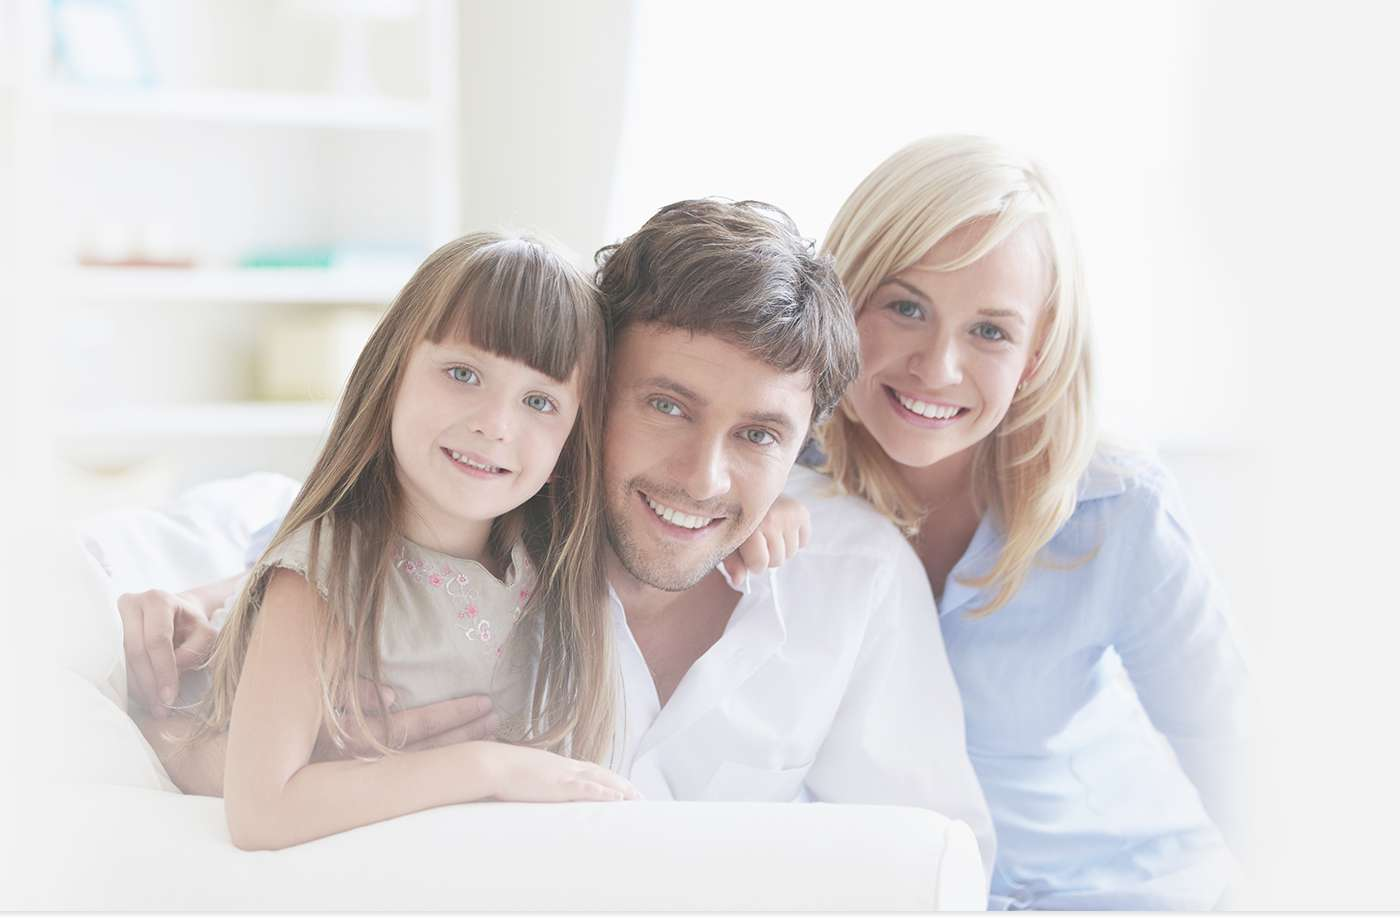 Family of three on couch smiling